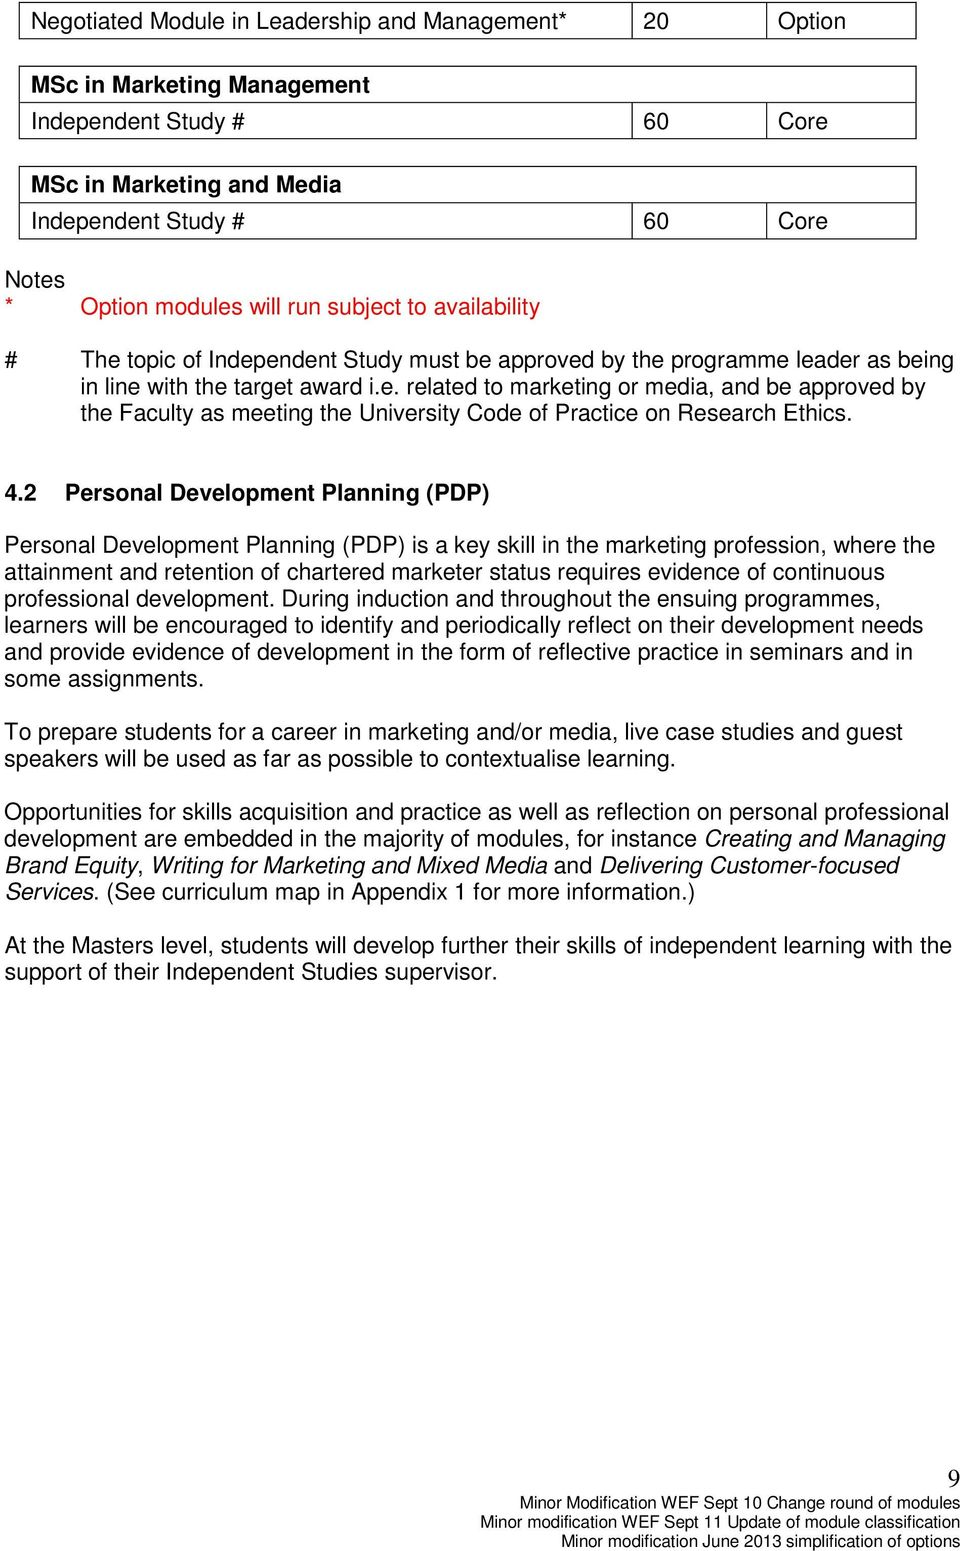 4.2 Personal Development Planning (PDP) Personal Development Planning (PDP) is a key skill in the marketing profession, where the attainment and retention of chartered marketer status requires